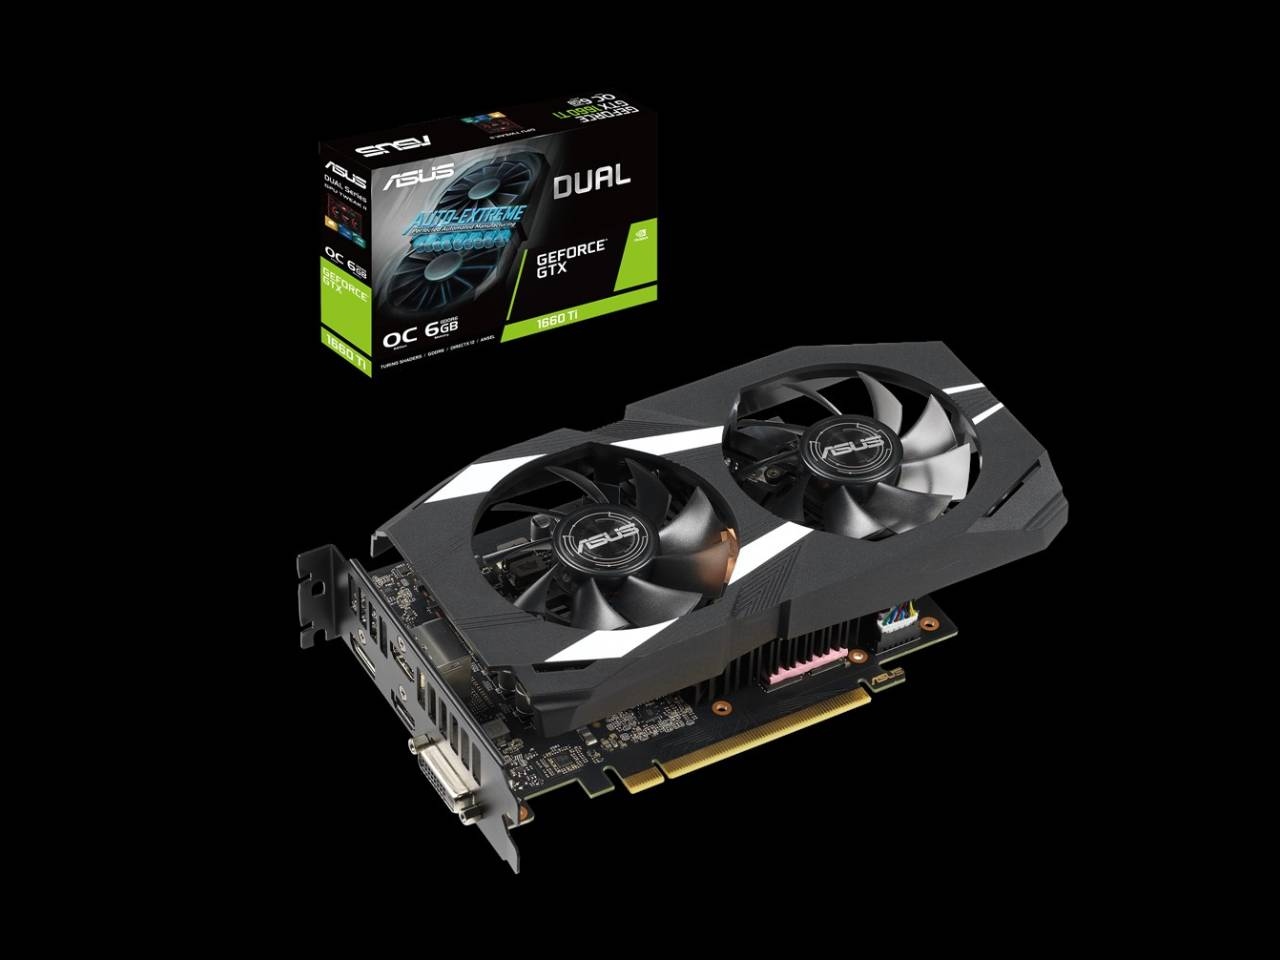 ASUS Dual GeForce GTX 1660 Ti OC edition 6GB GDDR6 Graphics Card.